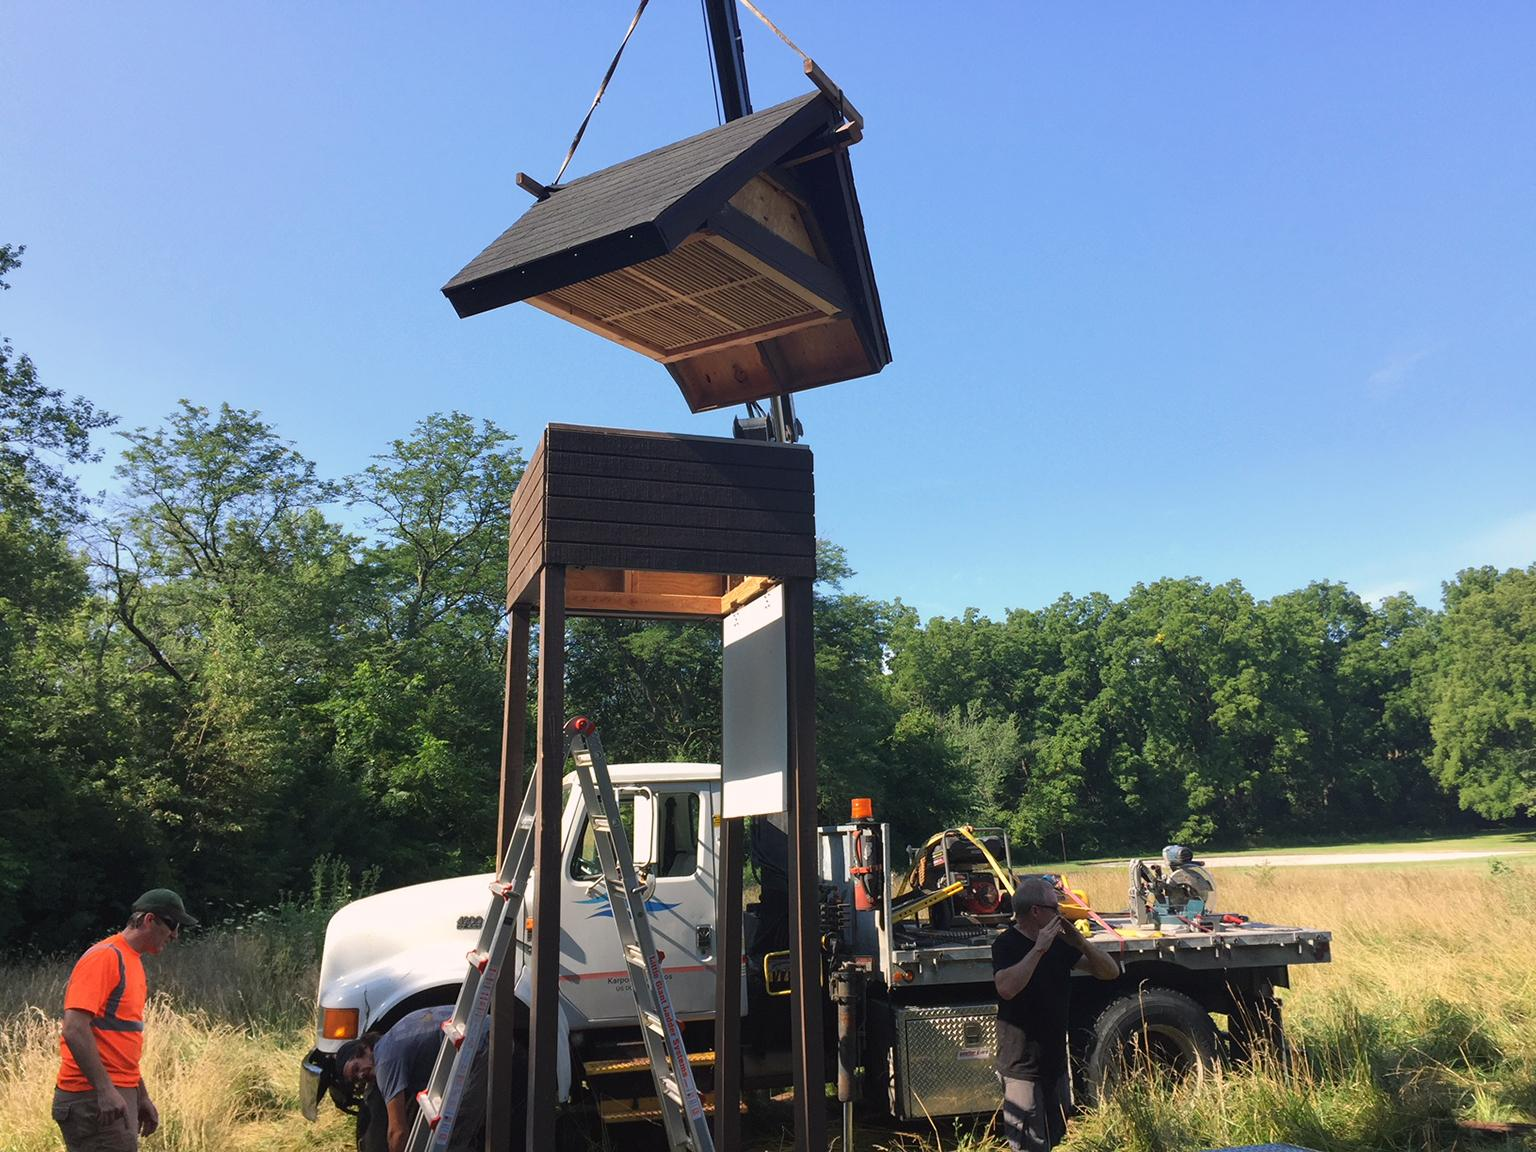 The sixth bat house to be installed in Cook County went up last week at Joe Orr Woods in Chicago Heights. (Courtesy Friends of the Chicago River)